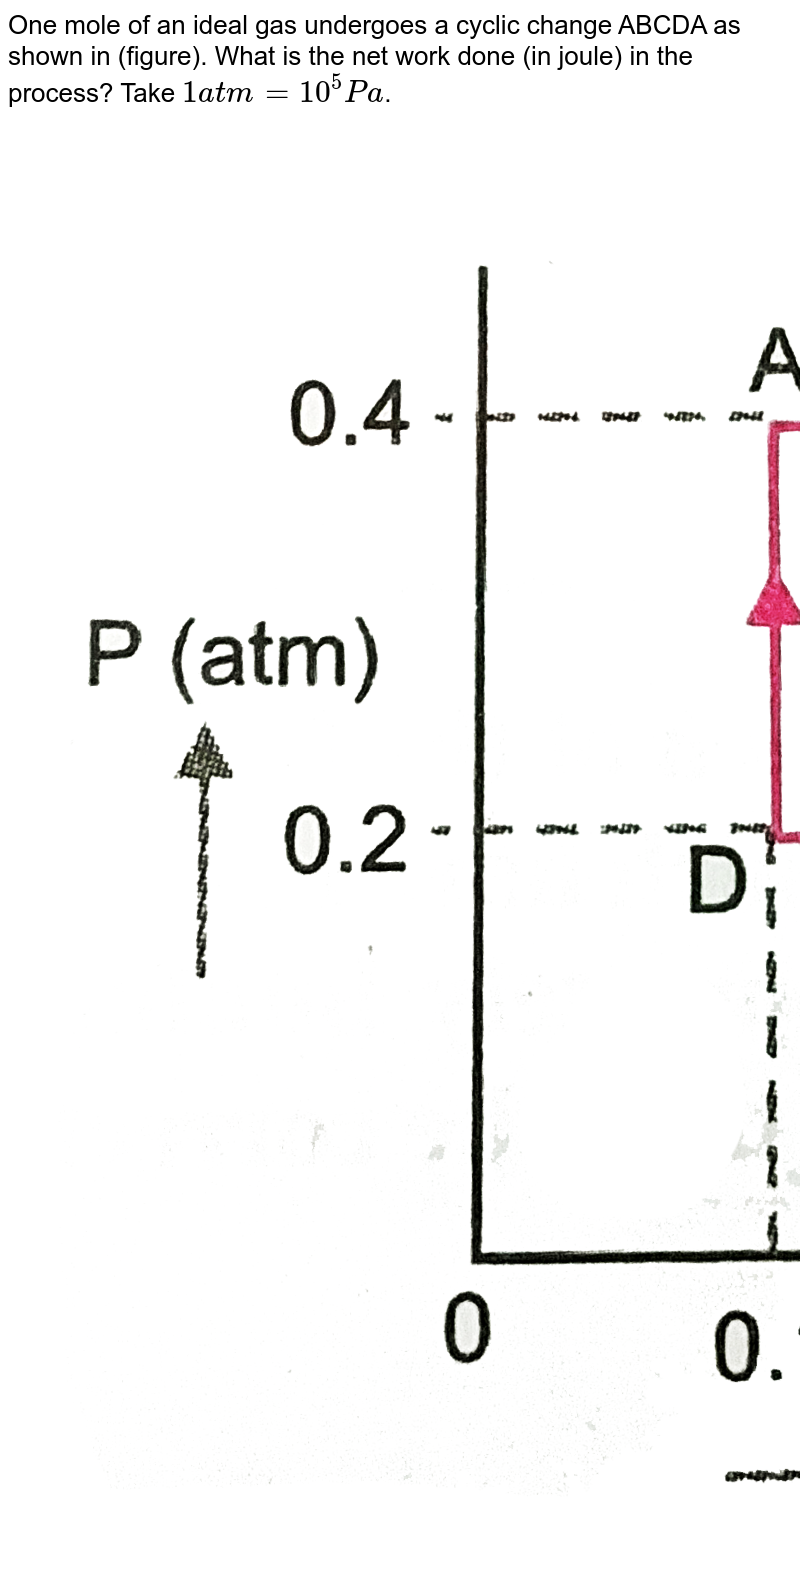 """One mole of an ideal gas undergoes a cyclic change ABCDA as shown in (figure). What is the net work done (in joule) in the process? Take `1 atm = 10^(5)Pa`. <br> <img src=""""https://d10lpgp6xz60nq.cloudfront.net/physics_images/PR_XI_V02_C08_E01_174_Q01.png"""" width=""""80%"""">"""